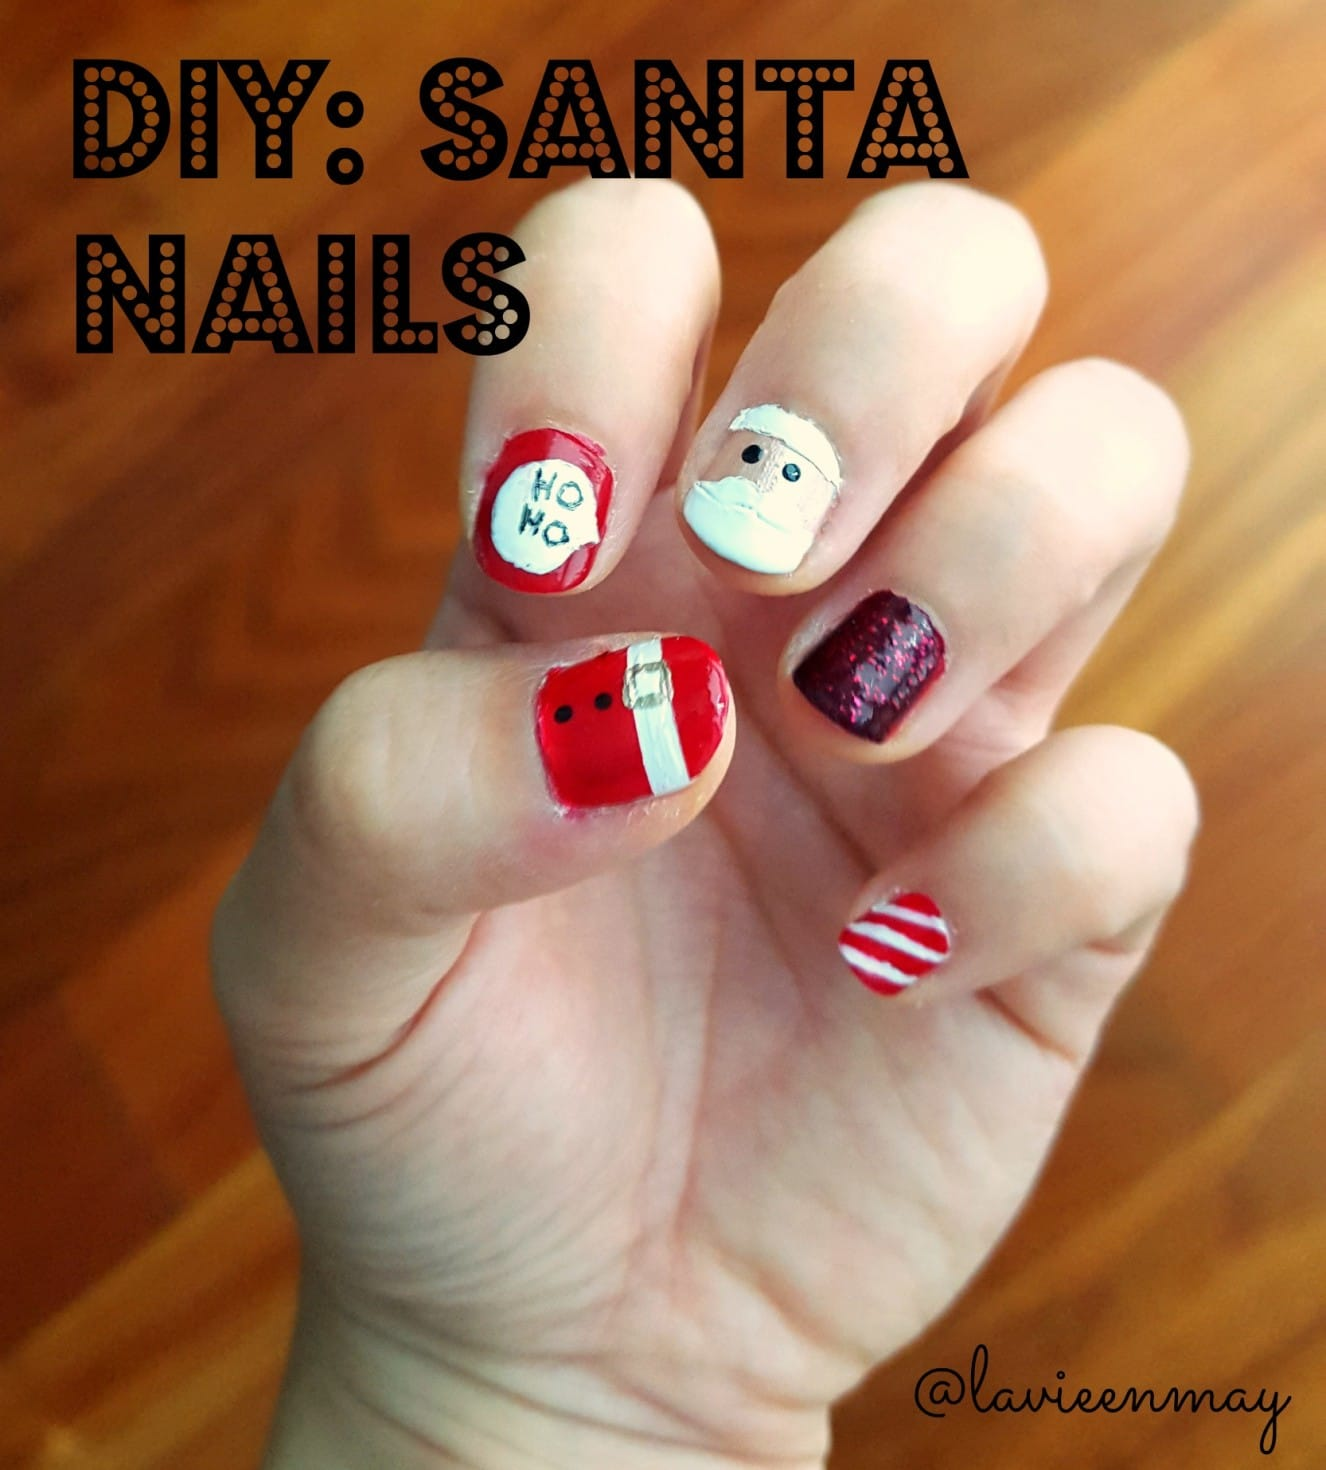 DIY Santa Nail Art Tutorial from La Vie en May on Katie Crafts; https://www.katiecrafts.com